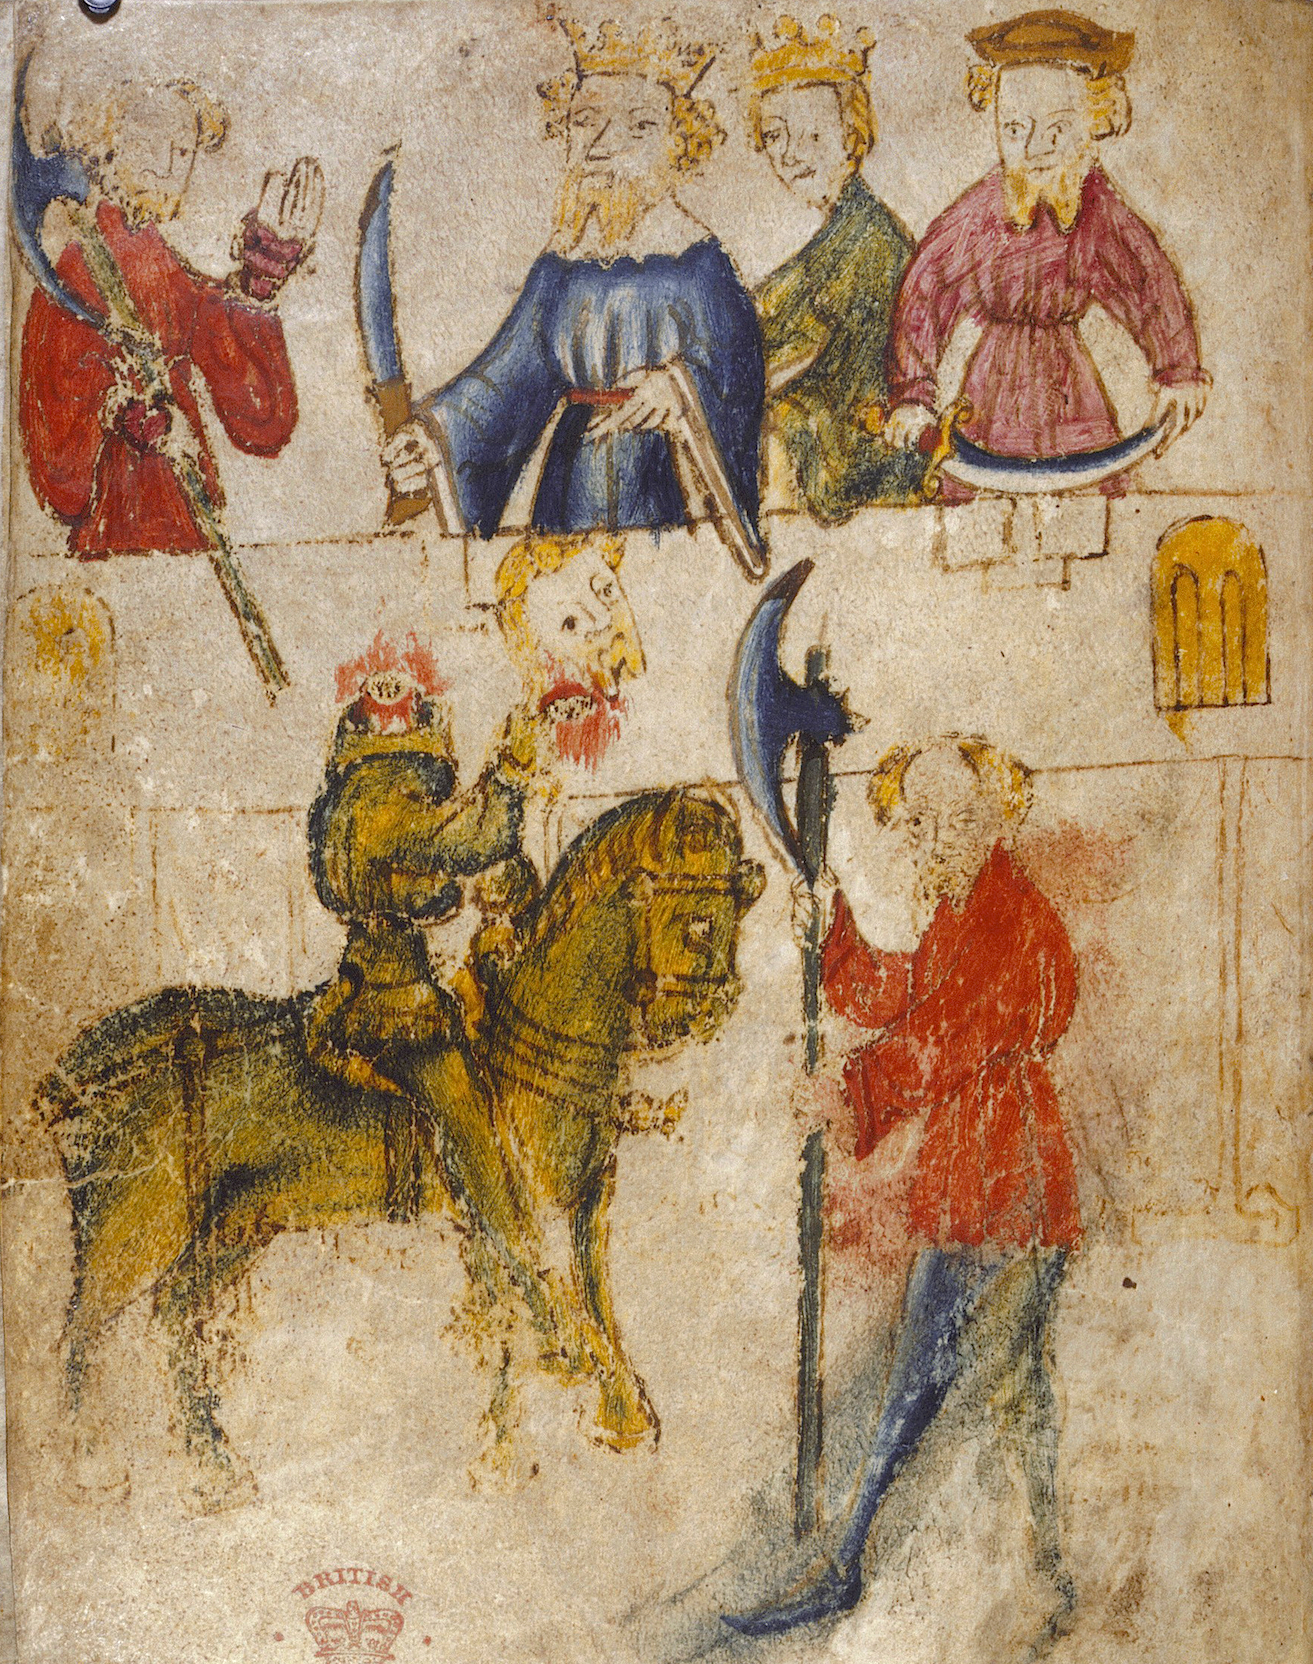 Depiction of Gawain